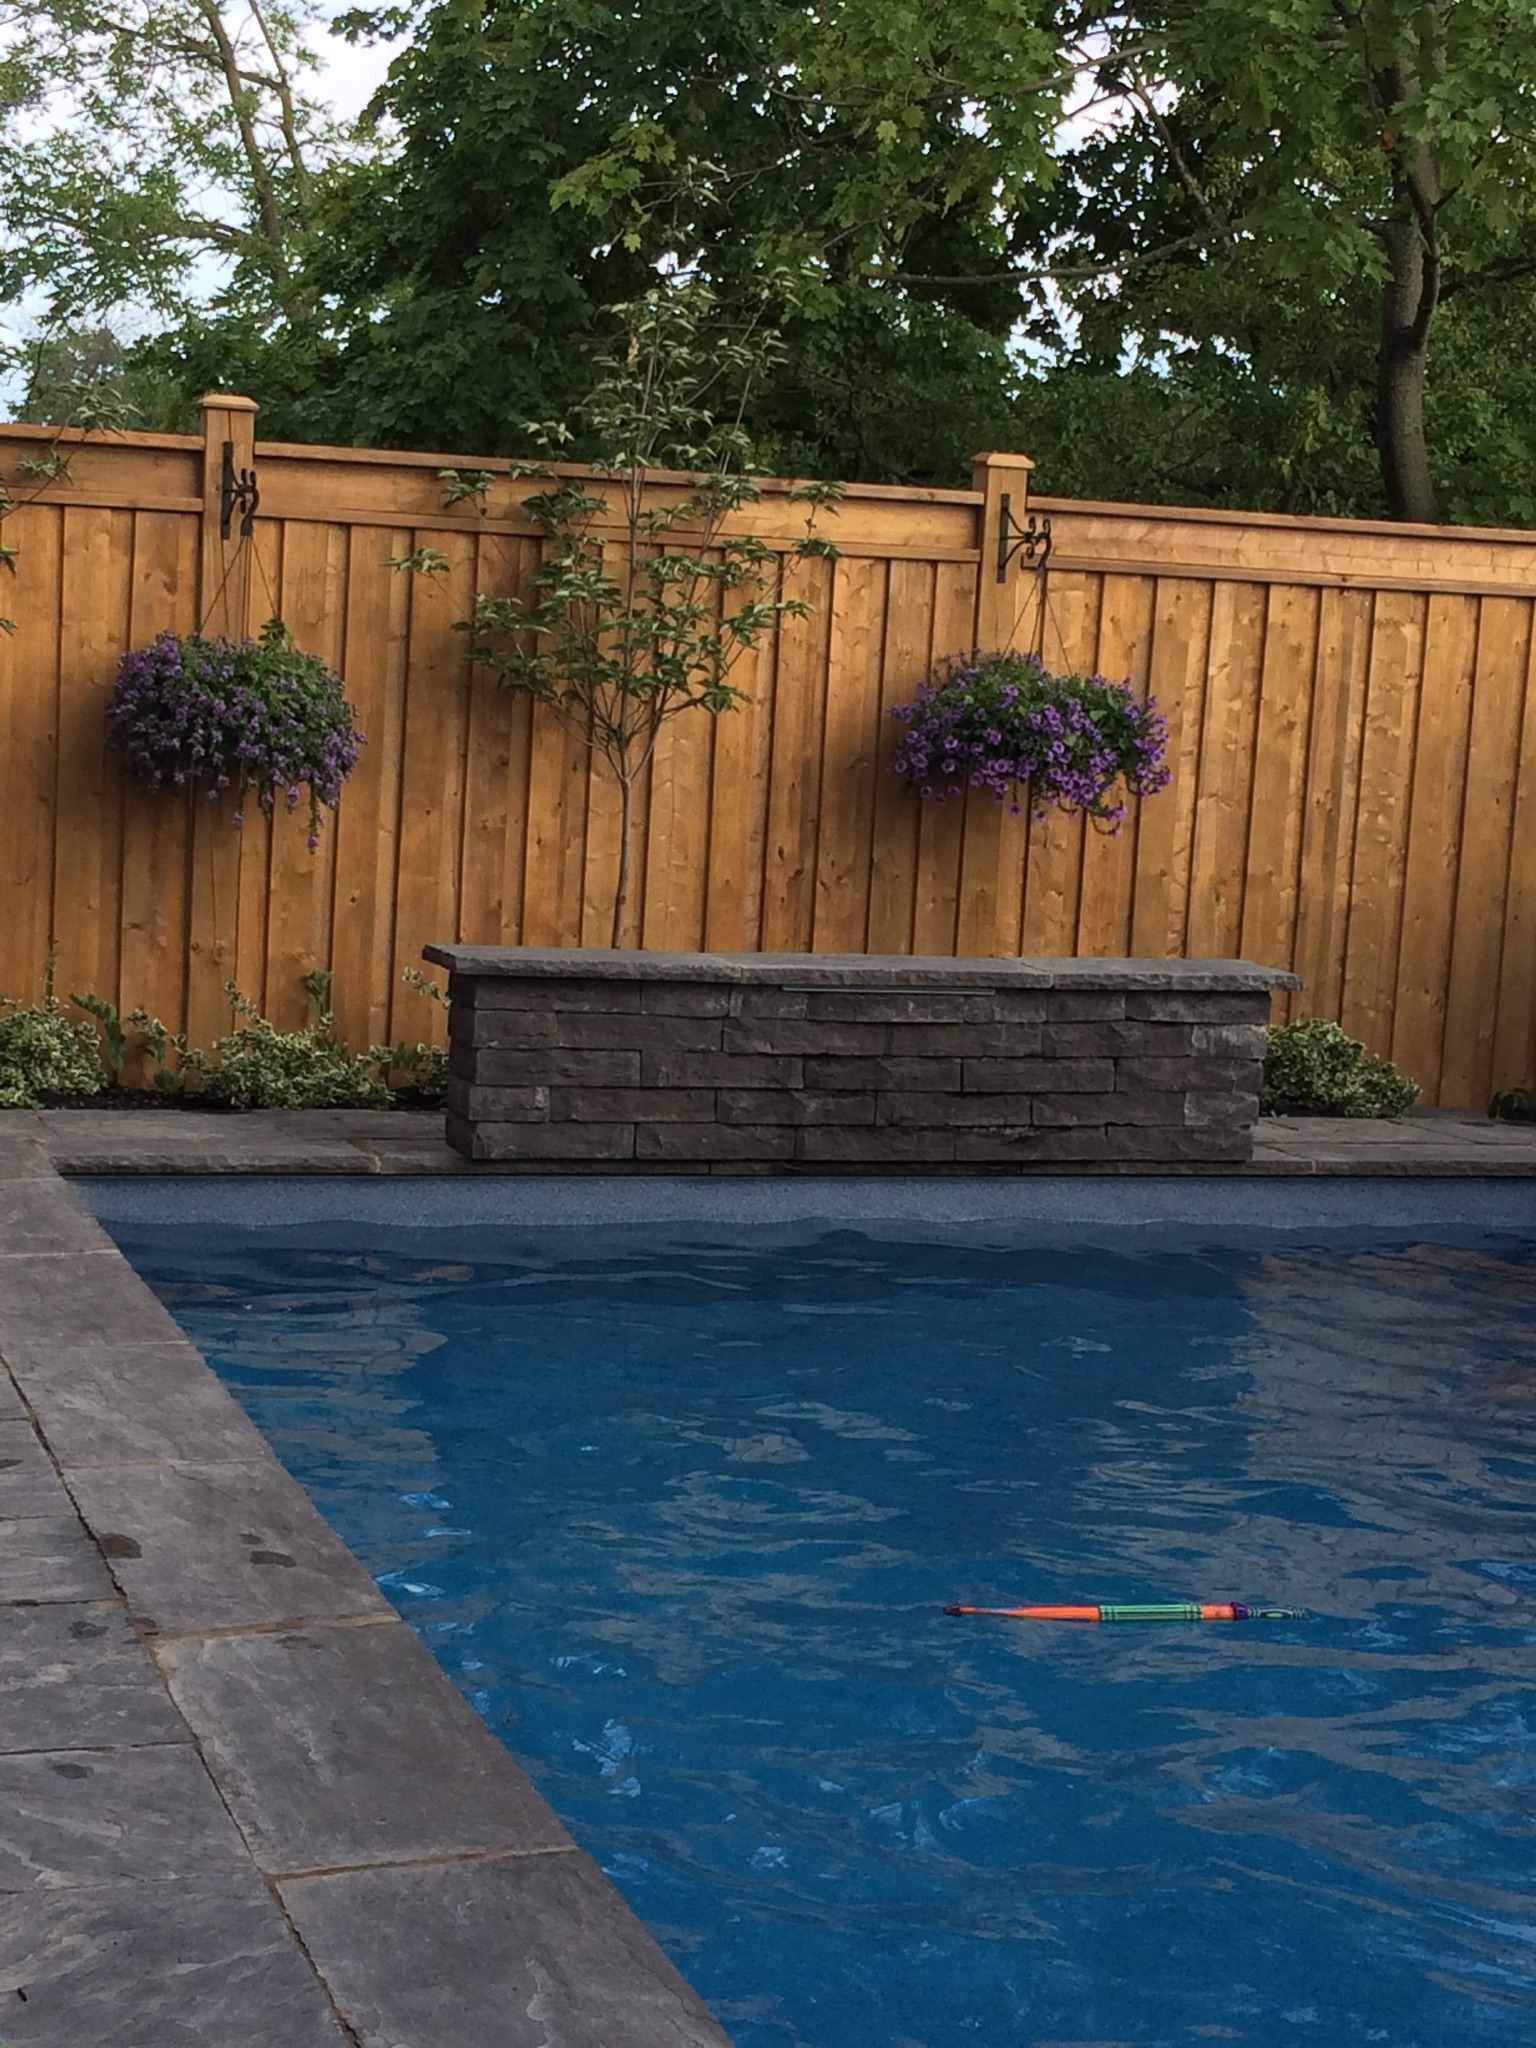 Wood fence around pool